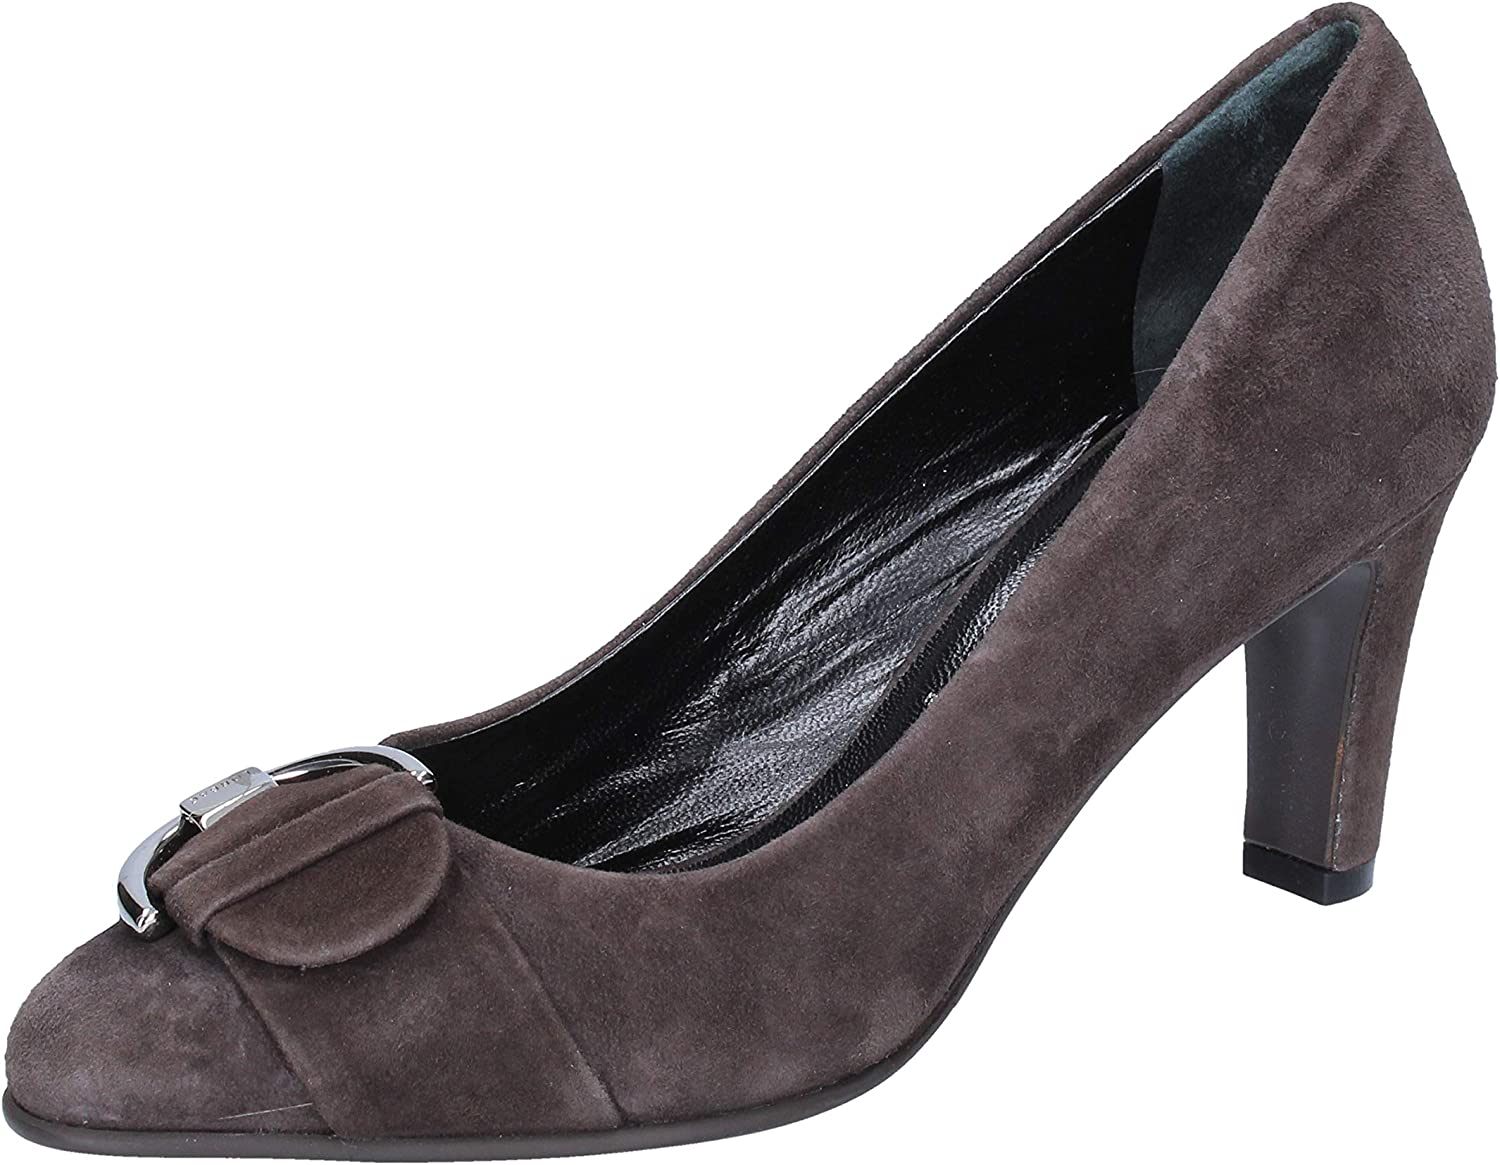 LORBAC Pumps-shoes Womens Suede Brown